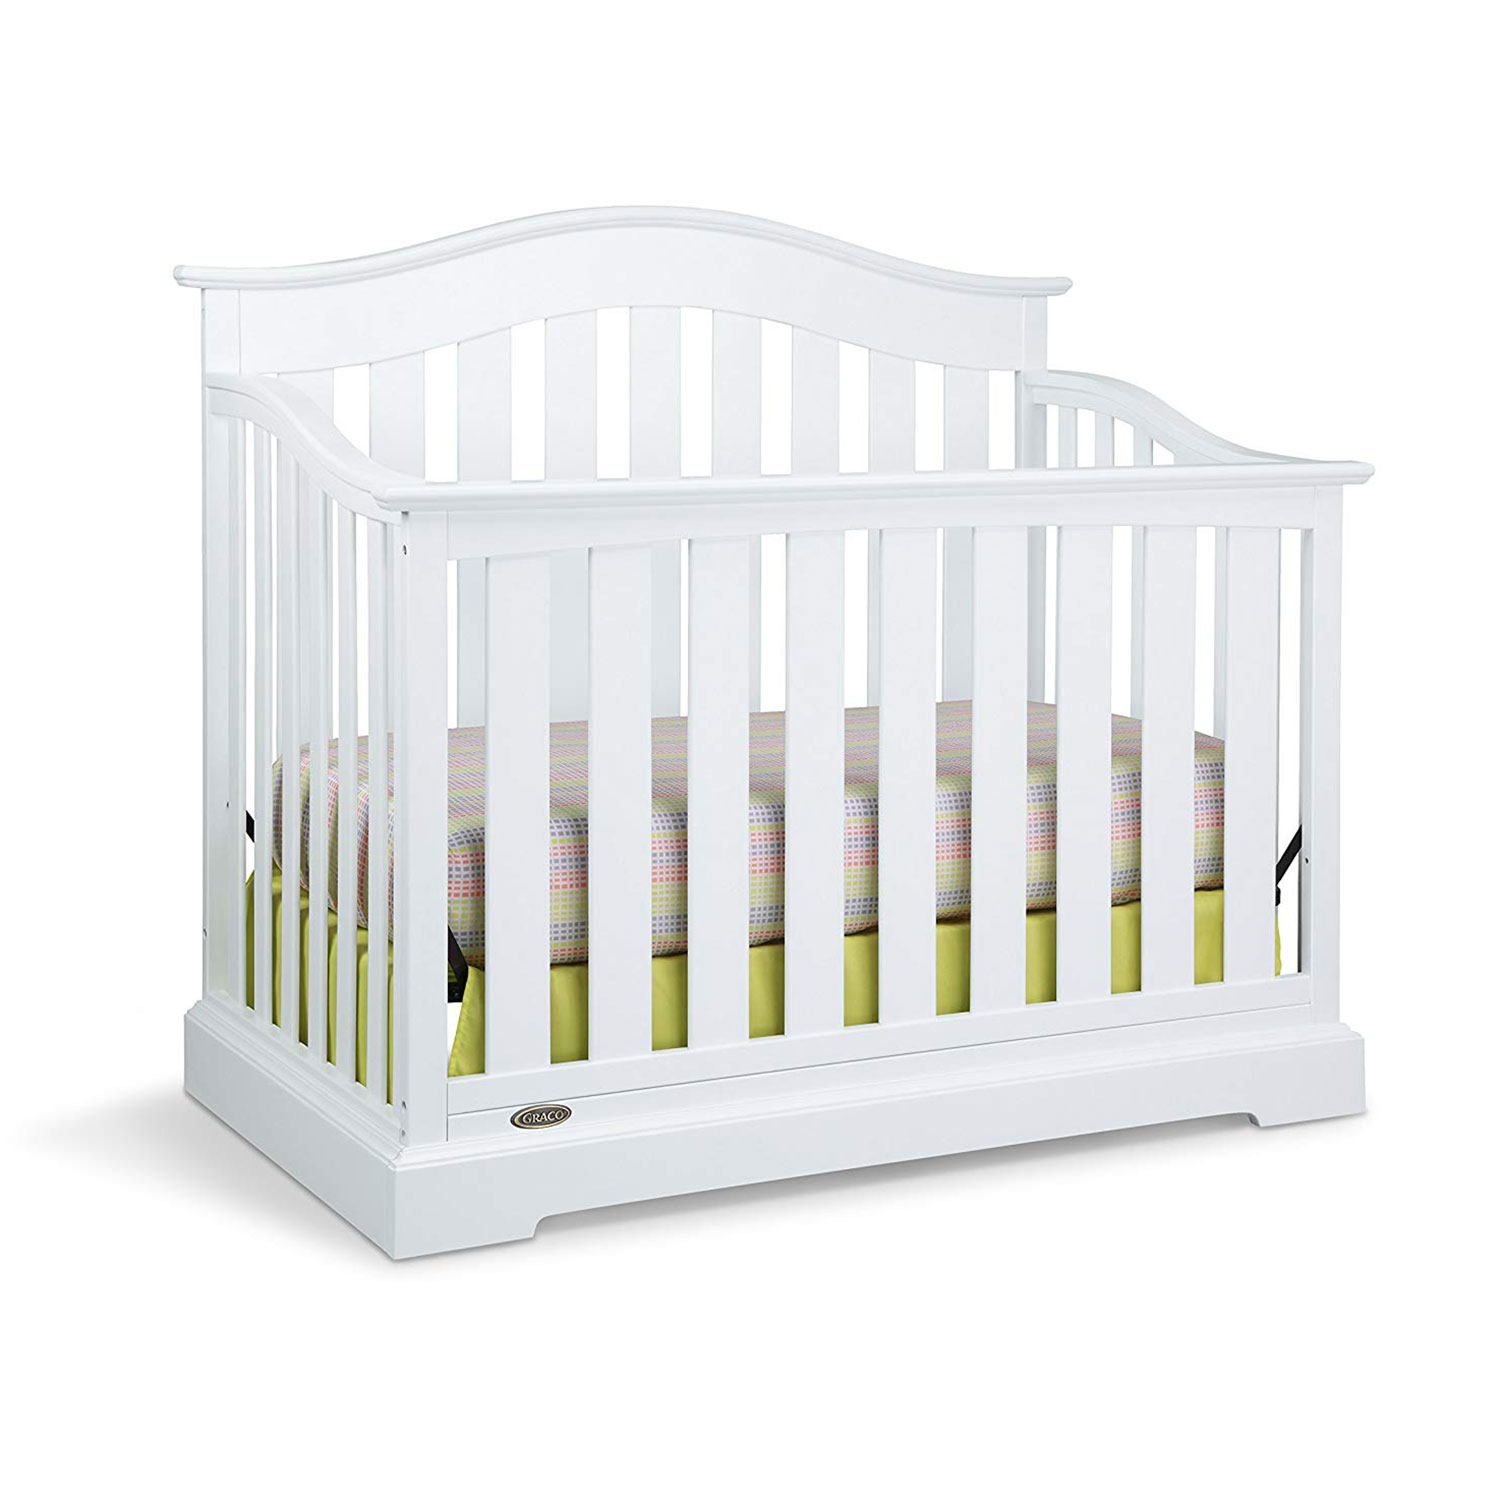 Details about graco westbrook durable 4 in 1 convertible baby toddler child crib daybed white